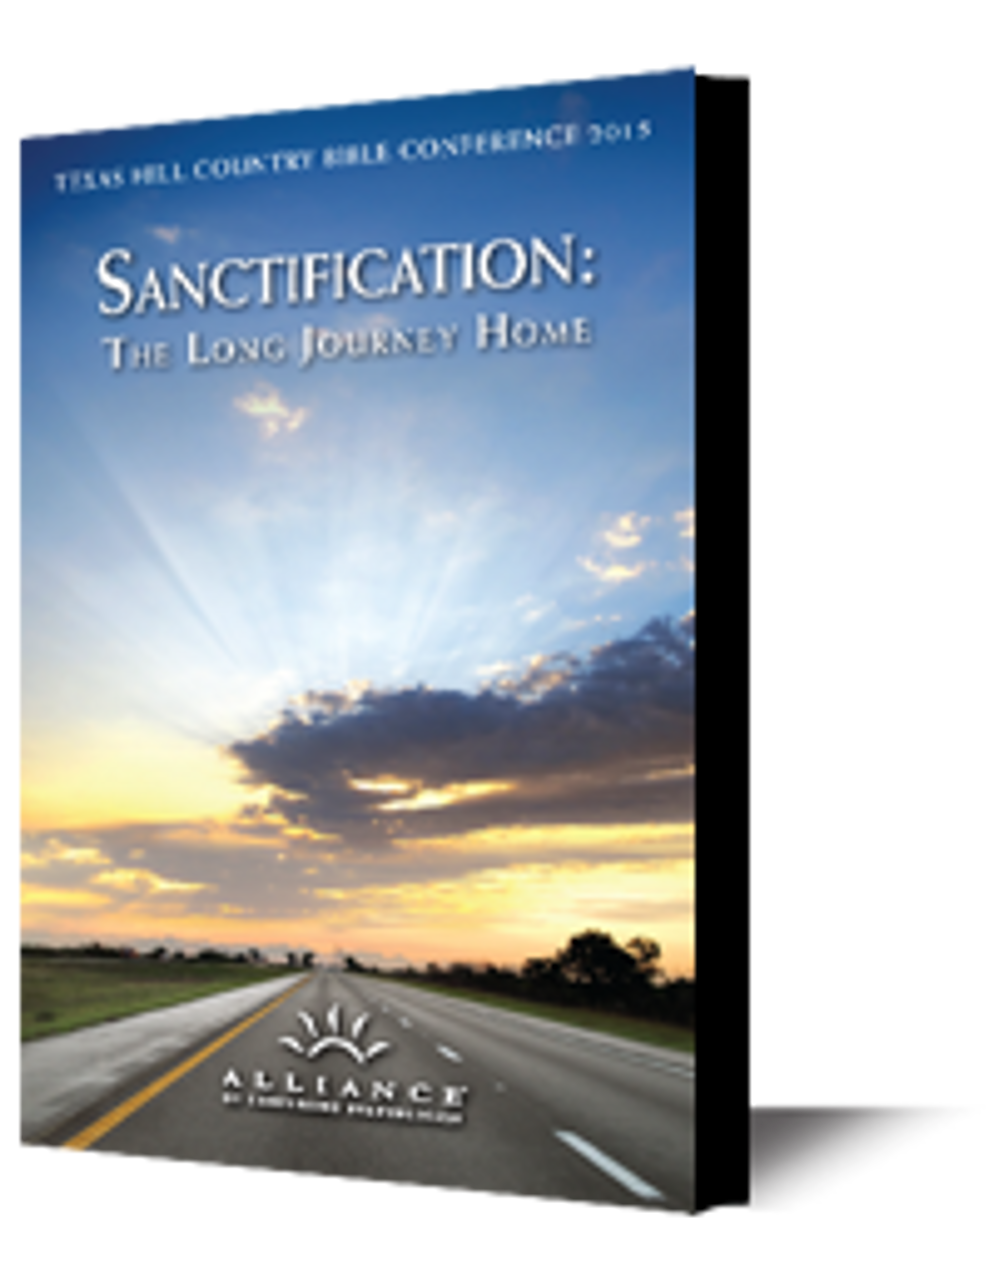 Sanctification: The Long Journey Home (CD Set)